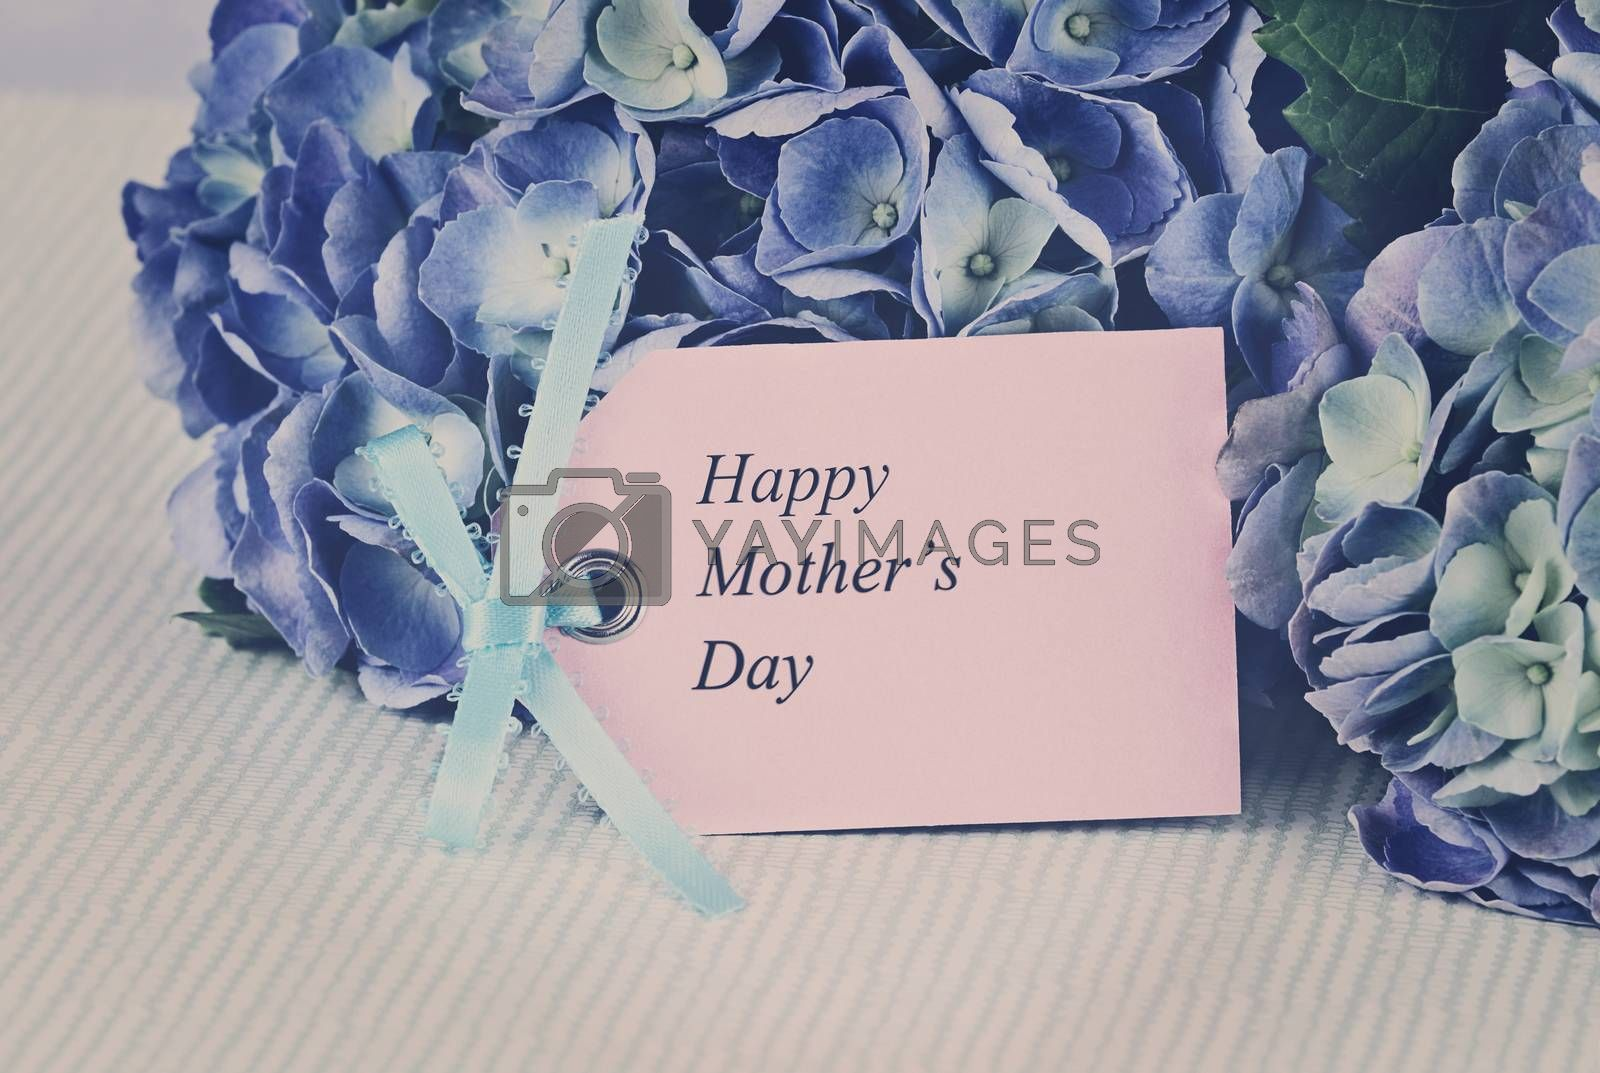 Royalty free image of Faded Mothers Day Card and Flowers by StephanieFrey